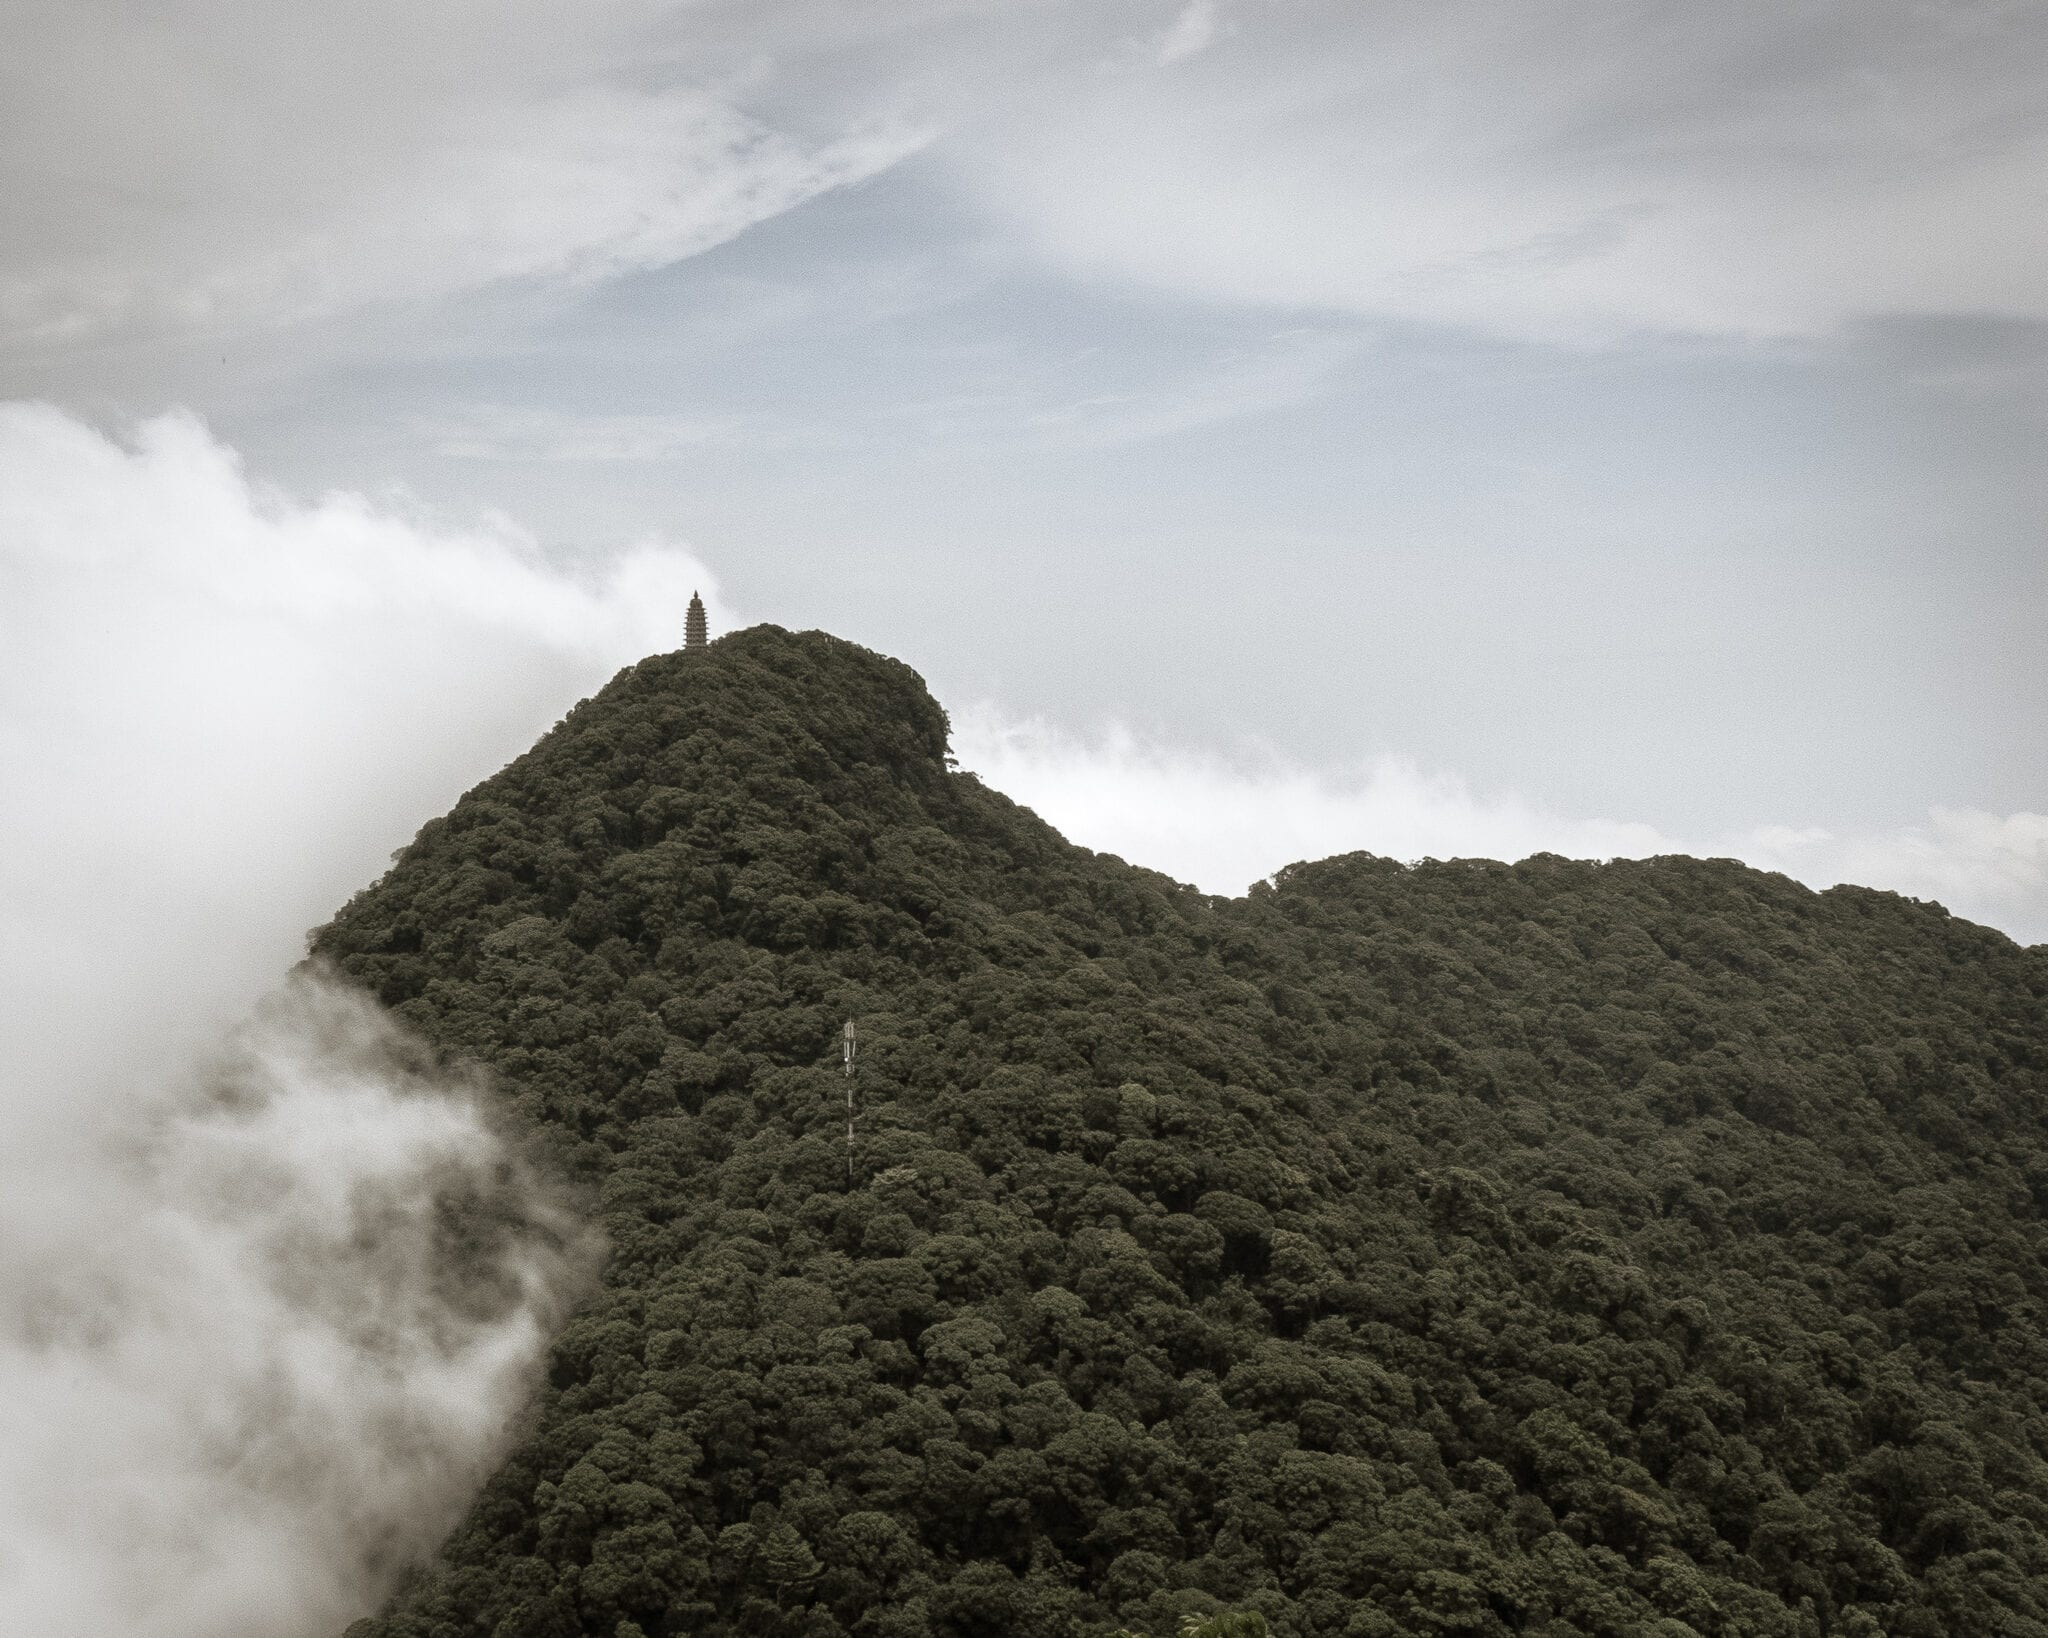 Image of the Nui Vua Summit in Ba Vi National Park Vietnam